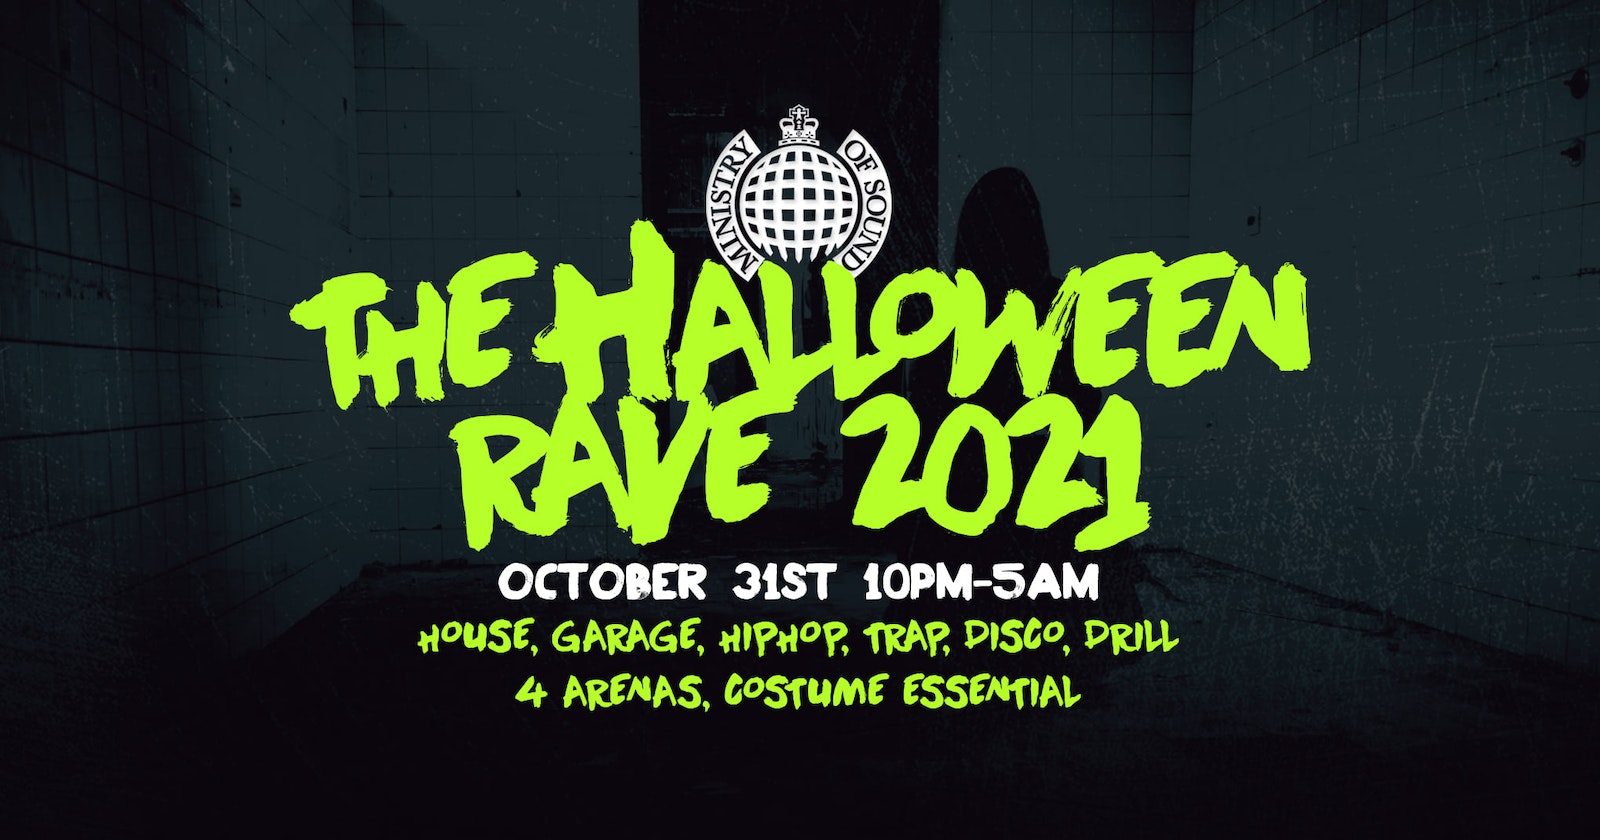 🚫 SOLD OUT 🚫 The Halloween Rave 2021  |  Ministry of Sound 👻